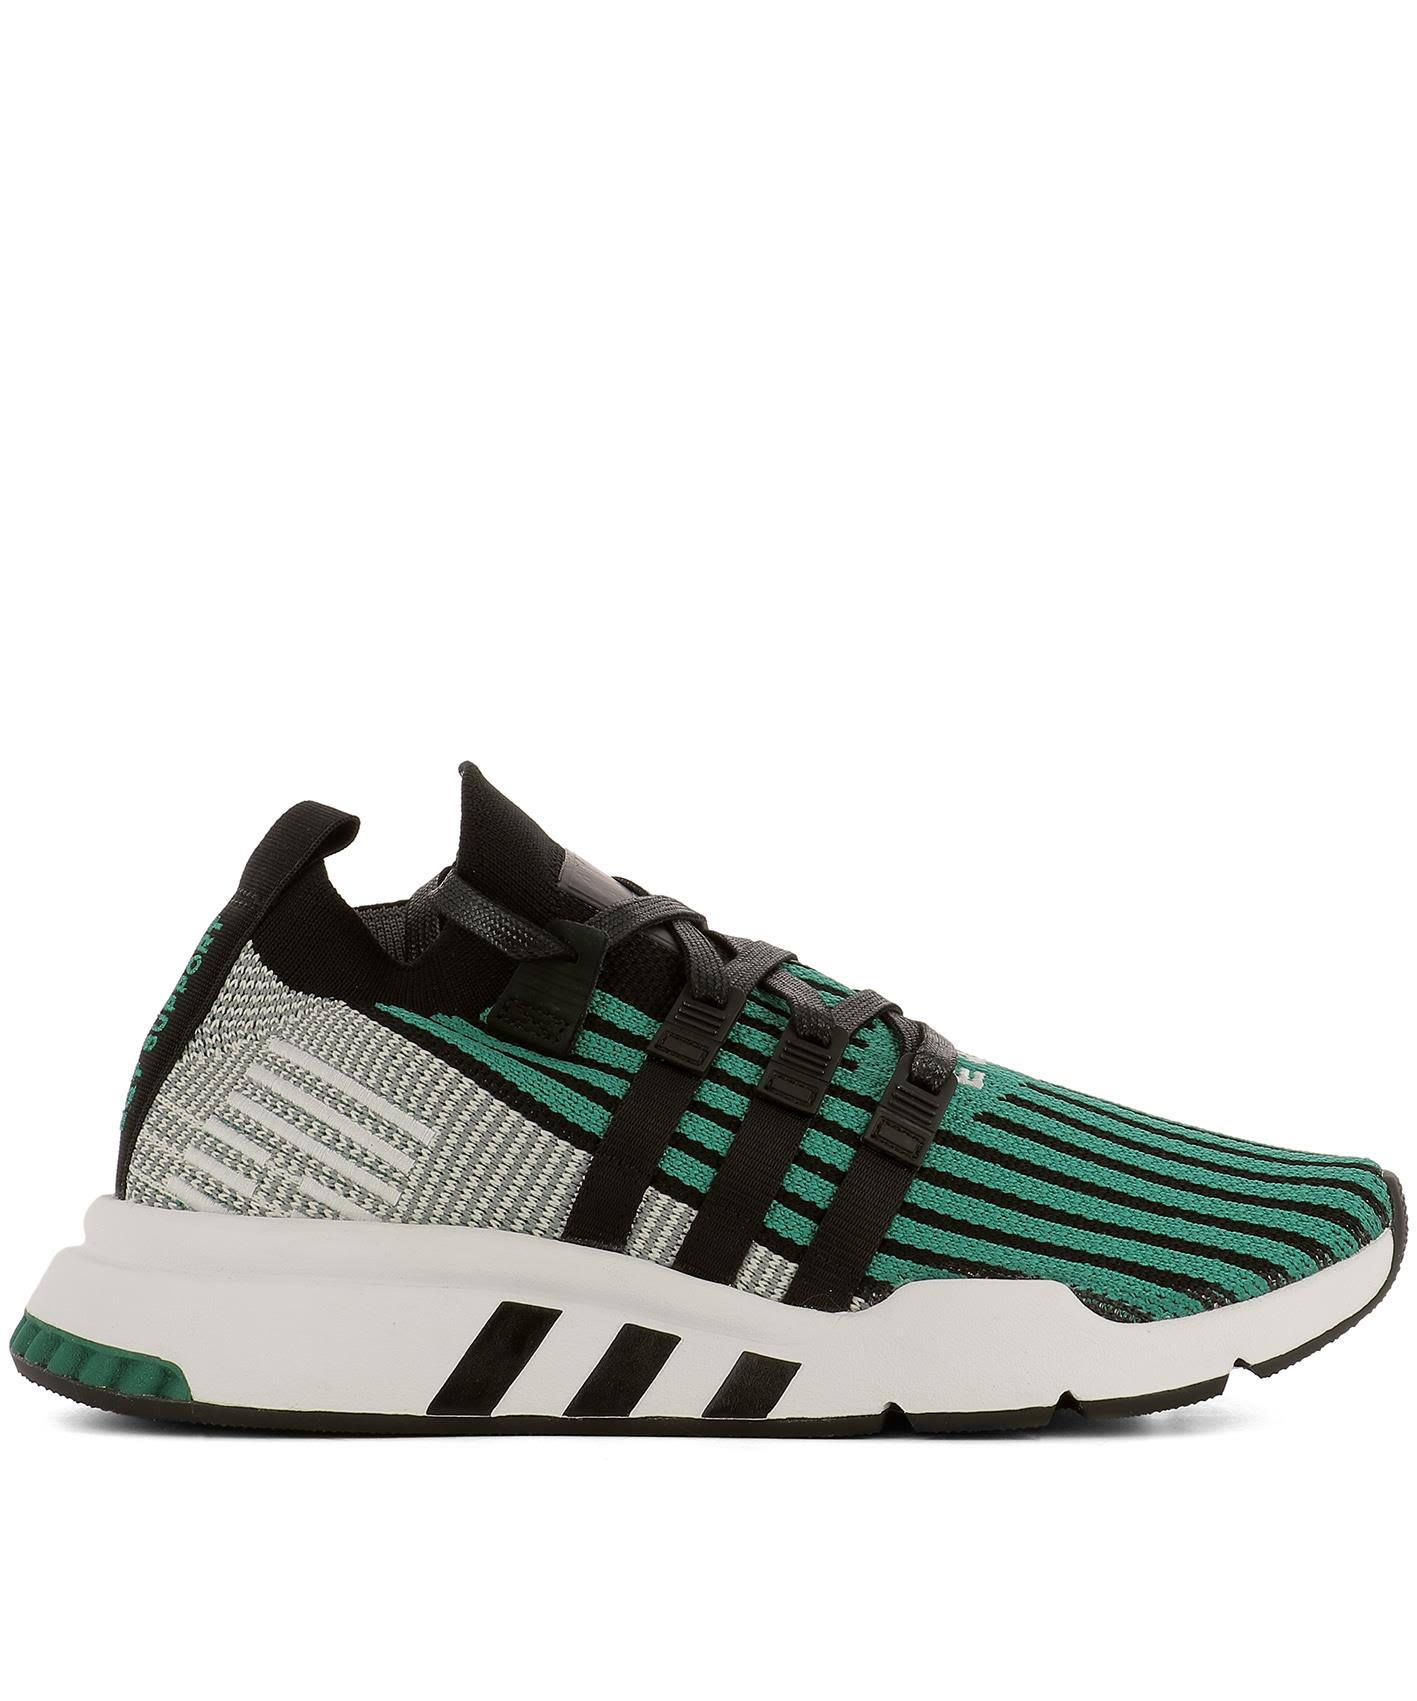 Green Fabric Eqt Support Mid Adv Pk Sneakers